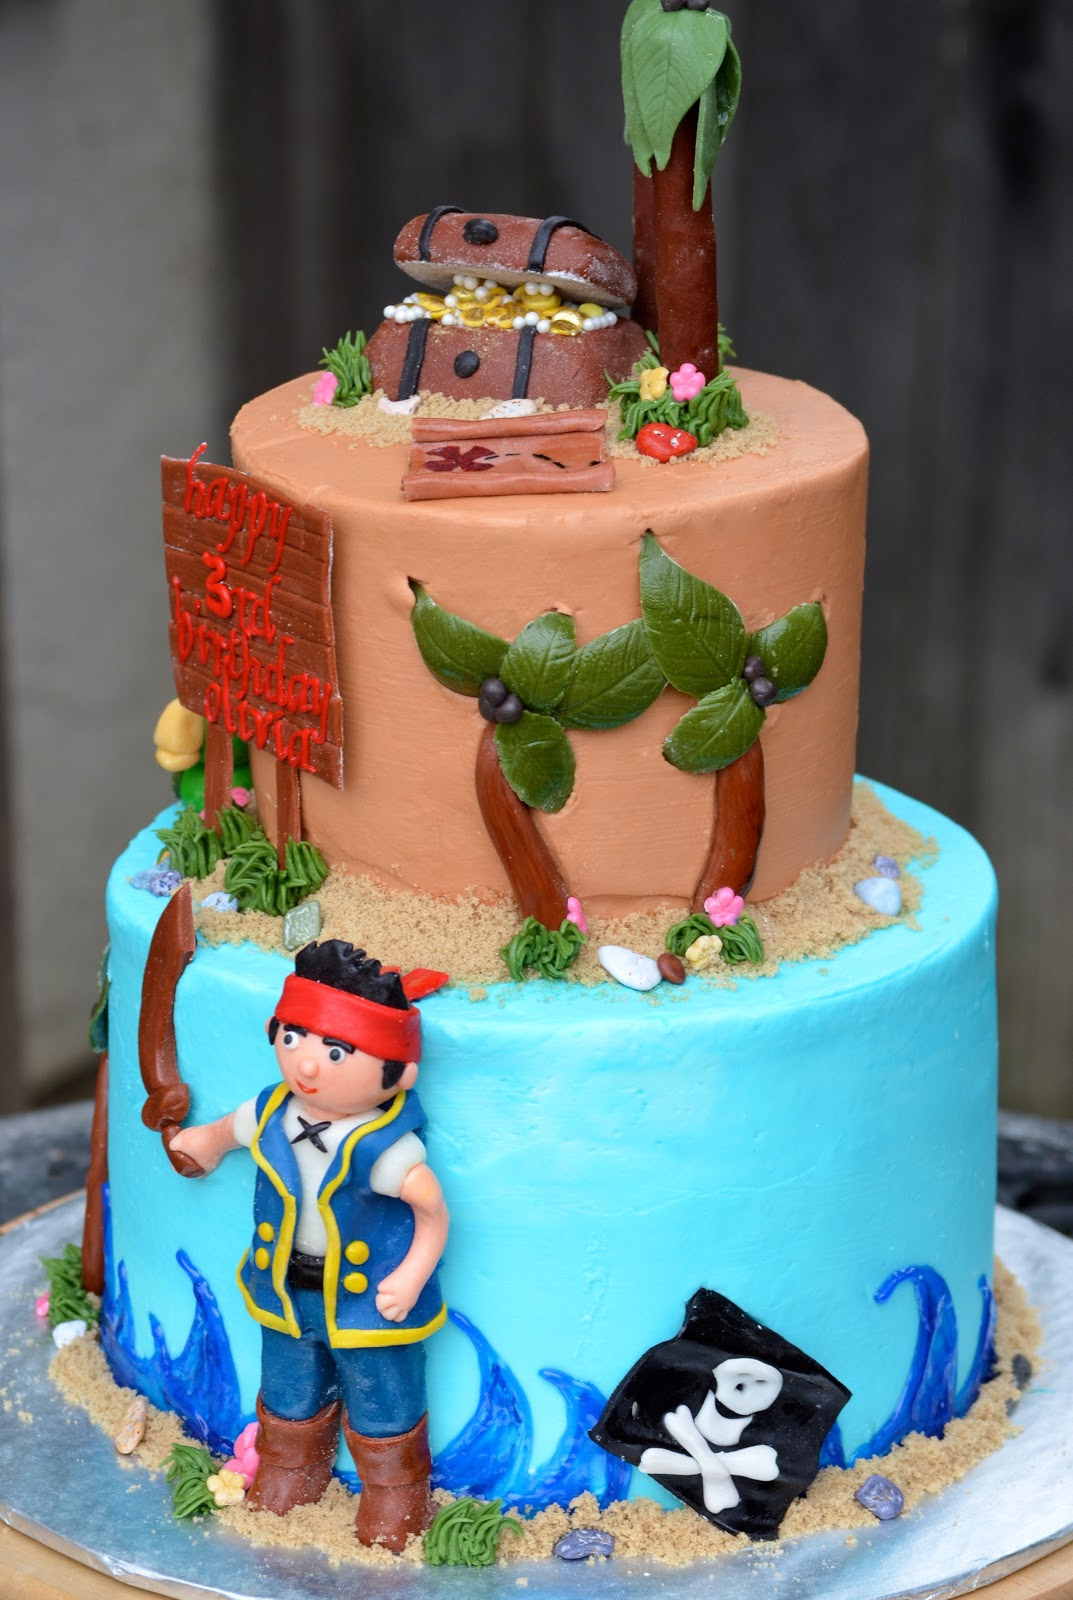 jake and the neverland pirates tiered cake - photo #22